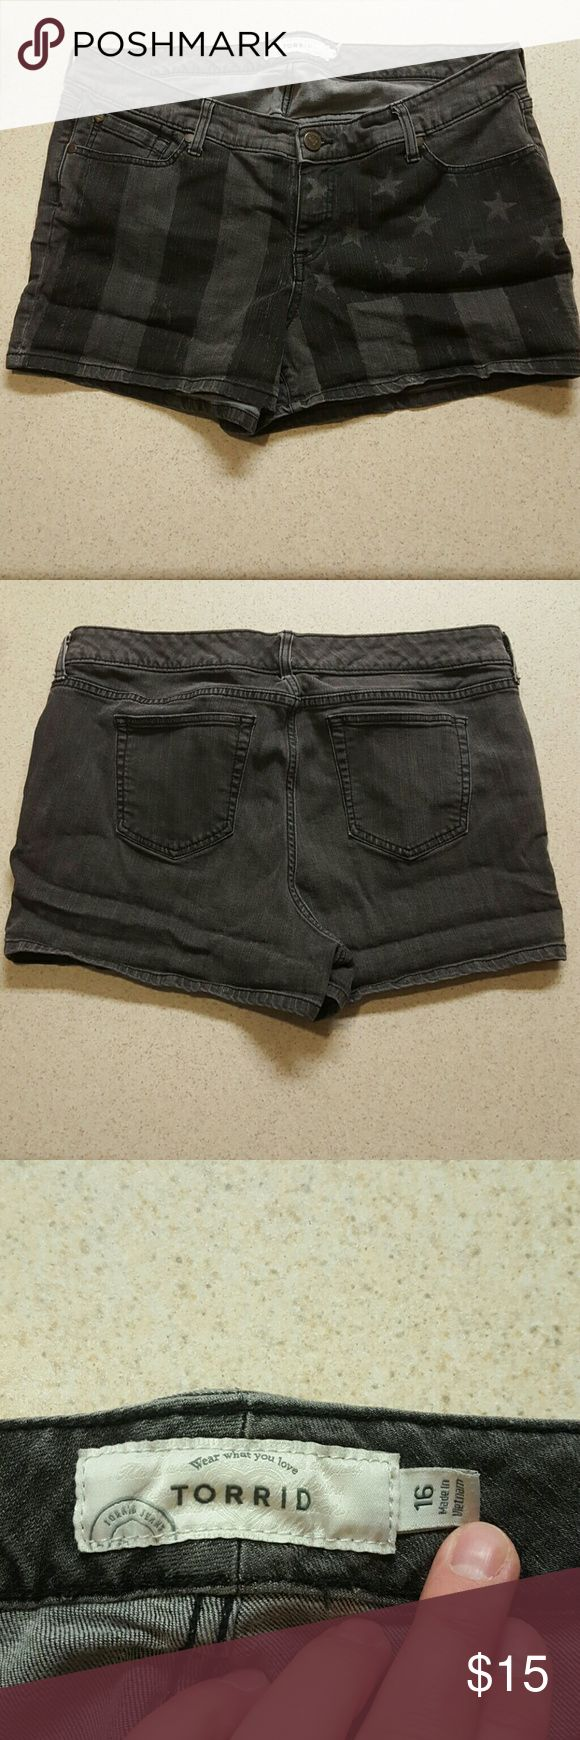 Black American Flag Shorts Torrid Size 16 Black American Flag Shorts Torrid Size 16 They are a black faded color with darker black American Flag stripes and stars as seen in picture torrid Shorts